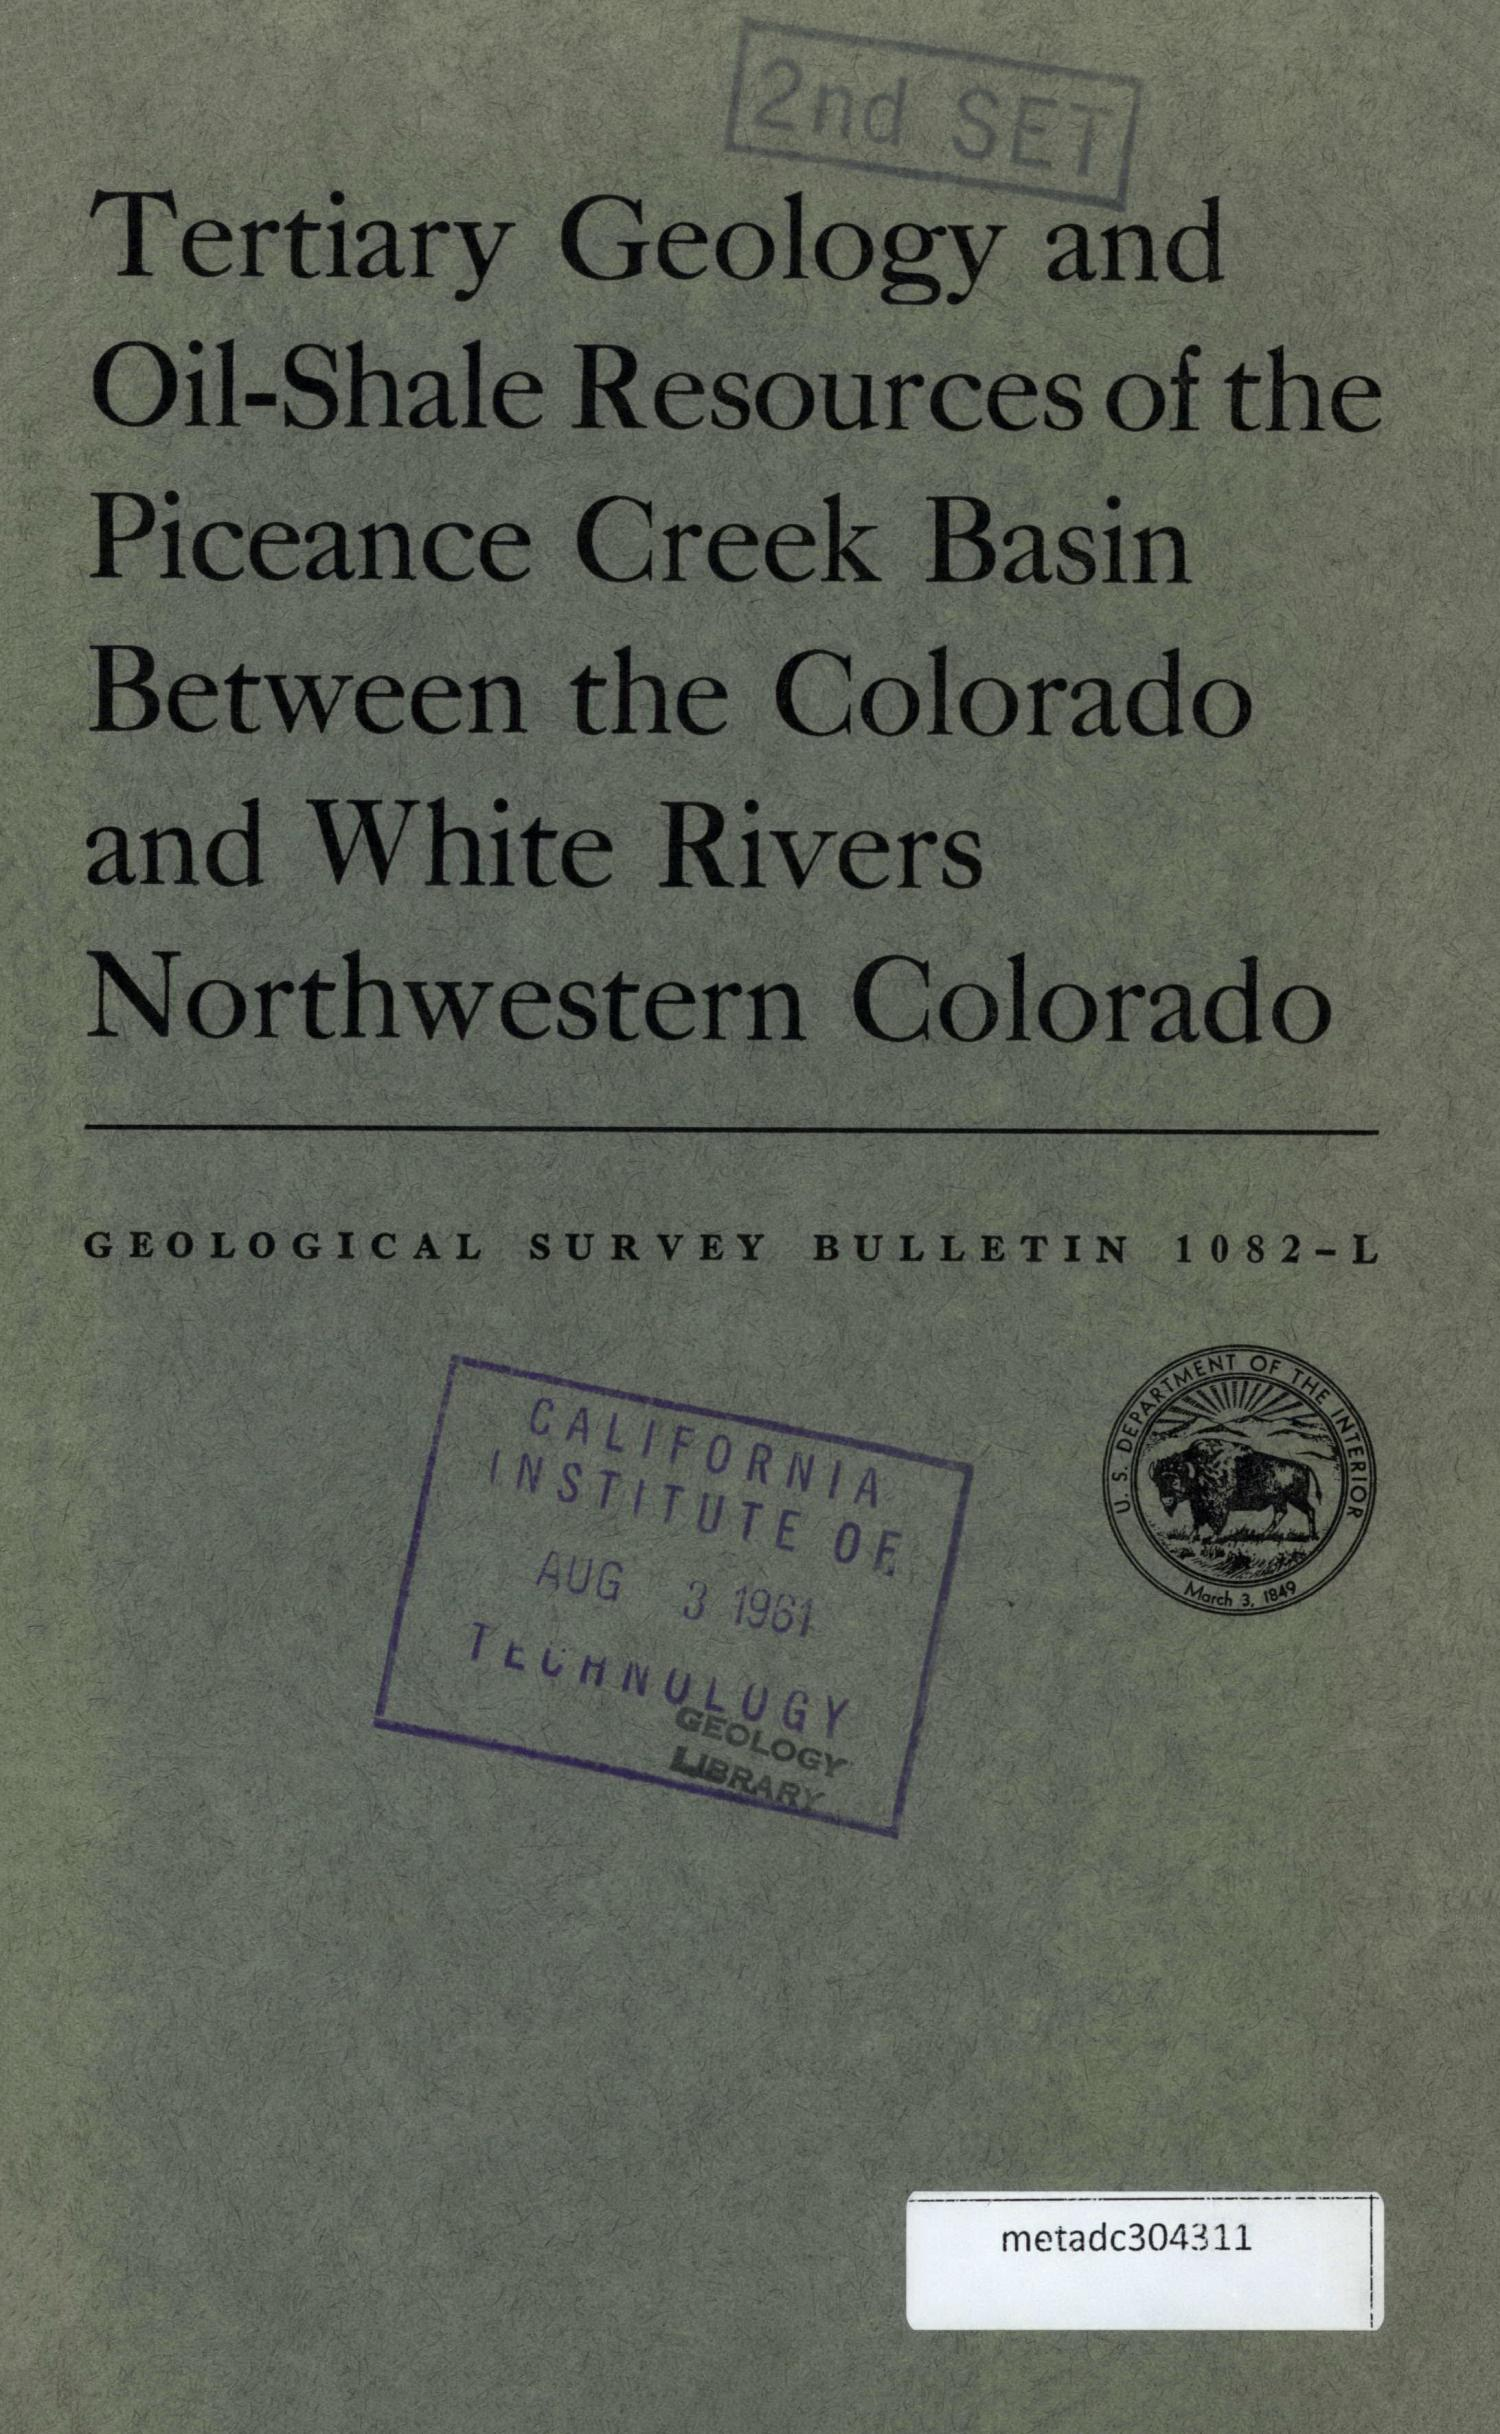 Tertiary Geology and Oil-Shale Resources of the Piceance Creek Basin, Between the Colorado and White Rivers, Northwestern Colorado                                                                                                      Front Cover